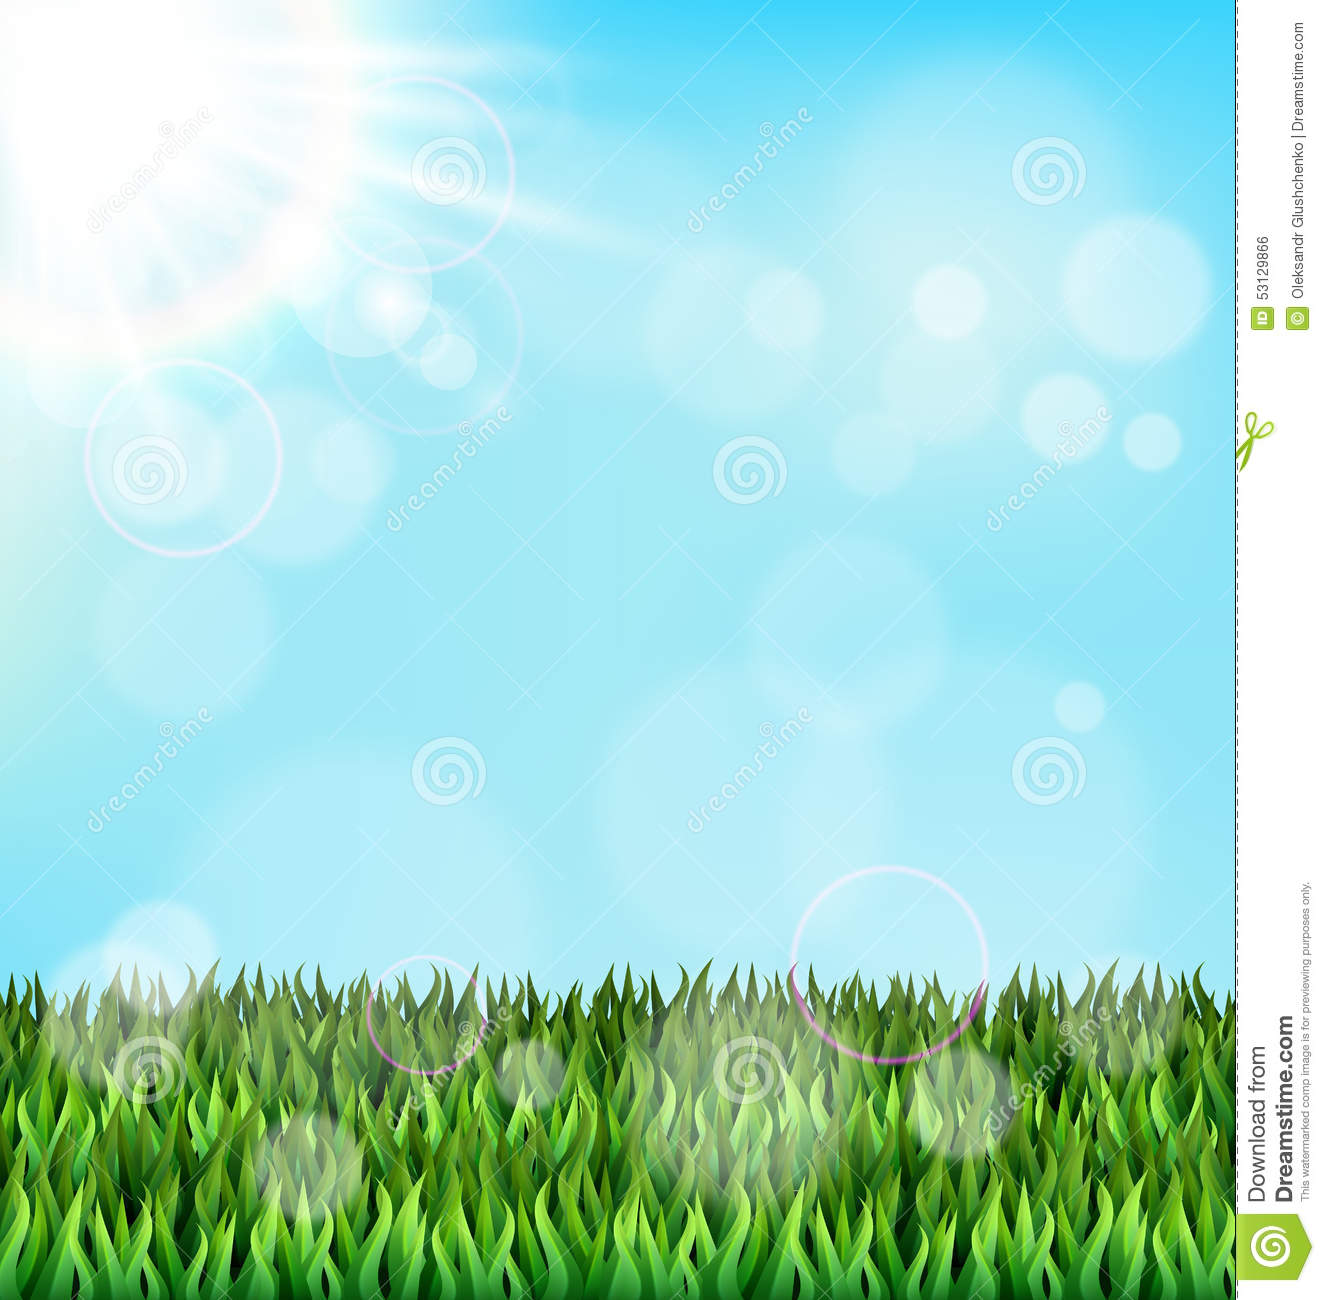 A Sample Lawn Care Business Plan Template